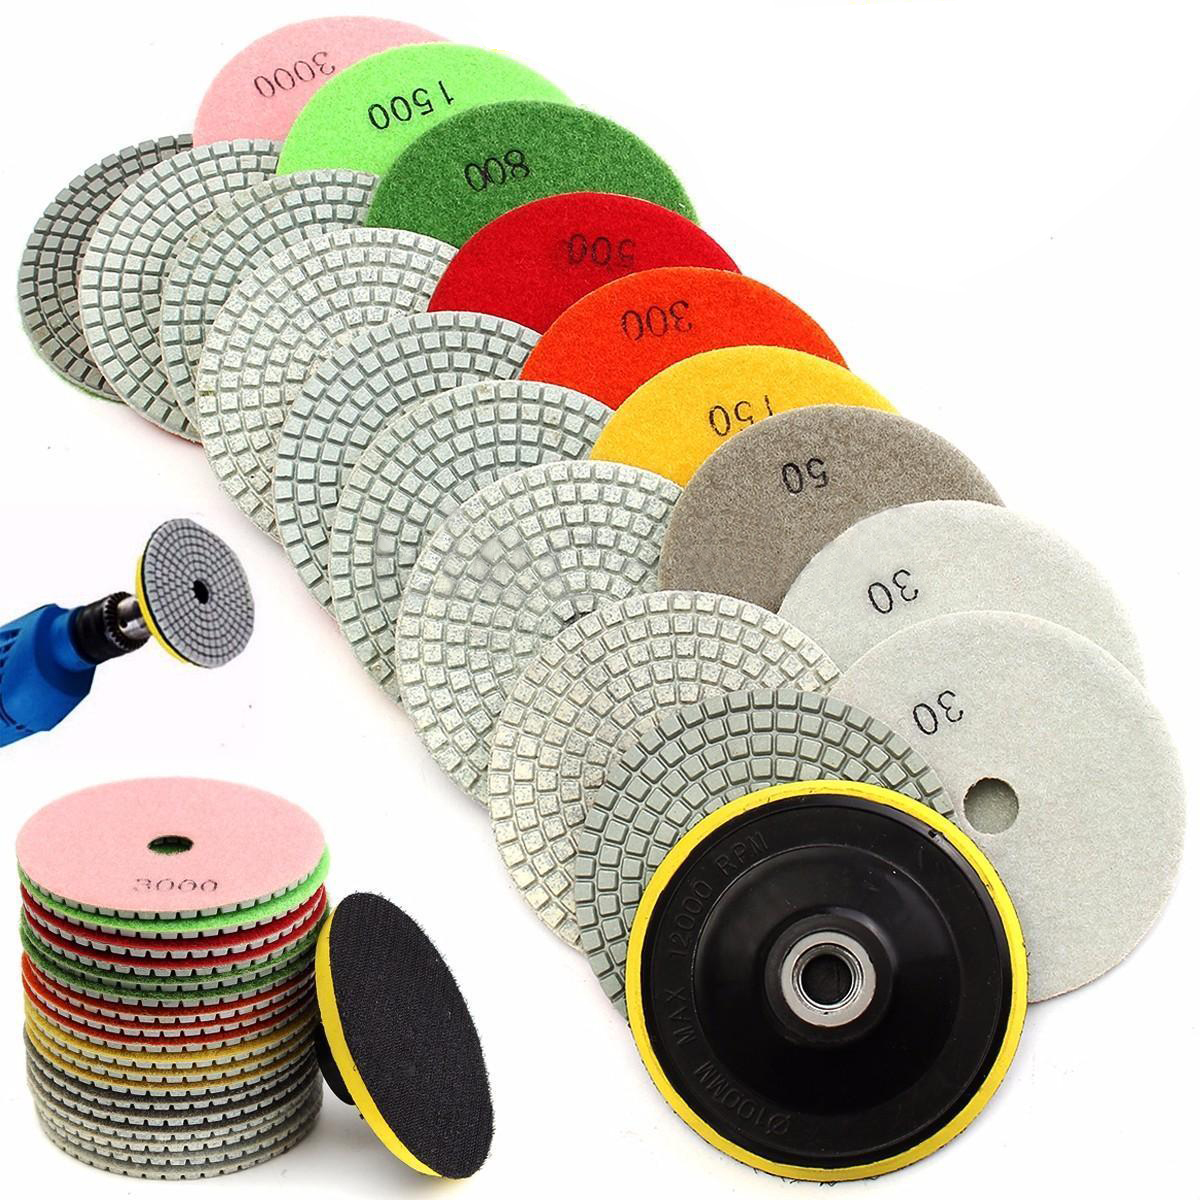 19pcs 4inch Wet/Dry Diamond Polishing Pads For Granite Marble Concrete Stone Polishing Tools<br>